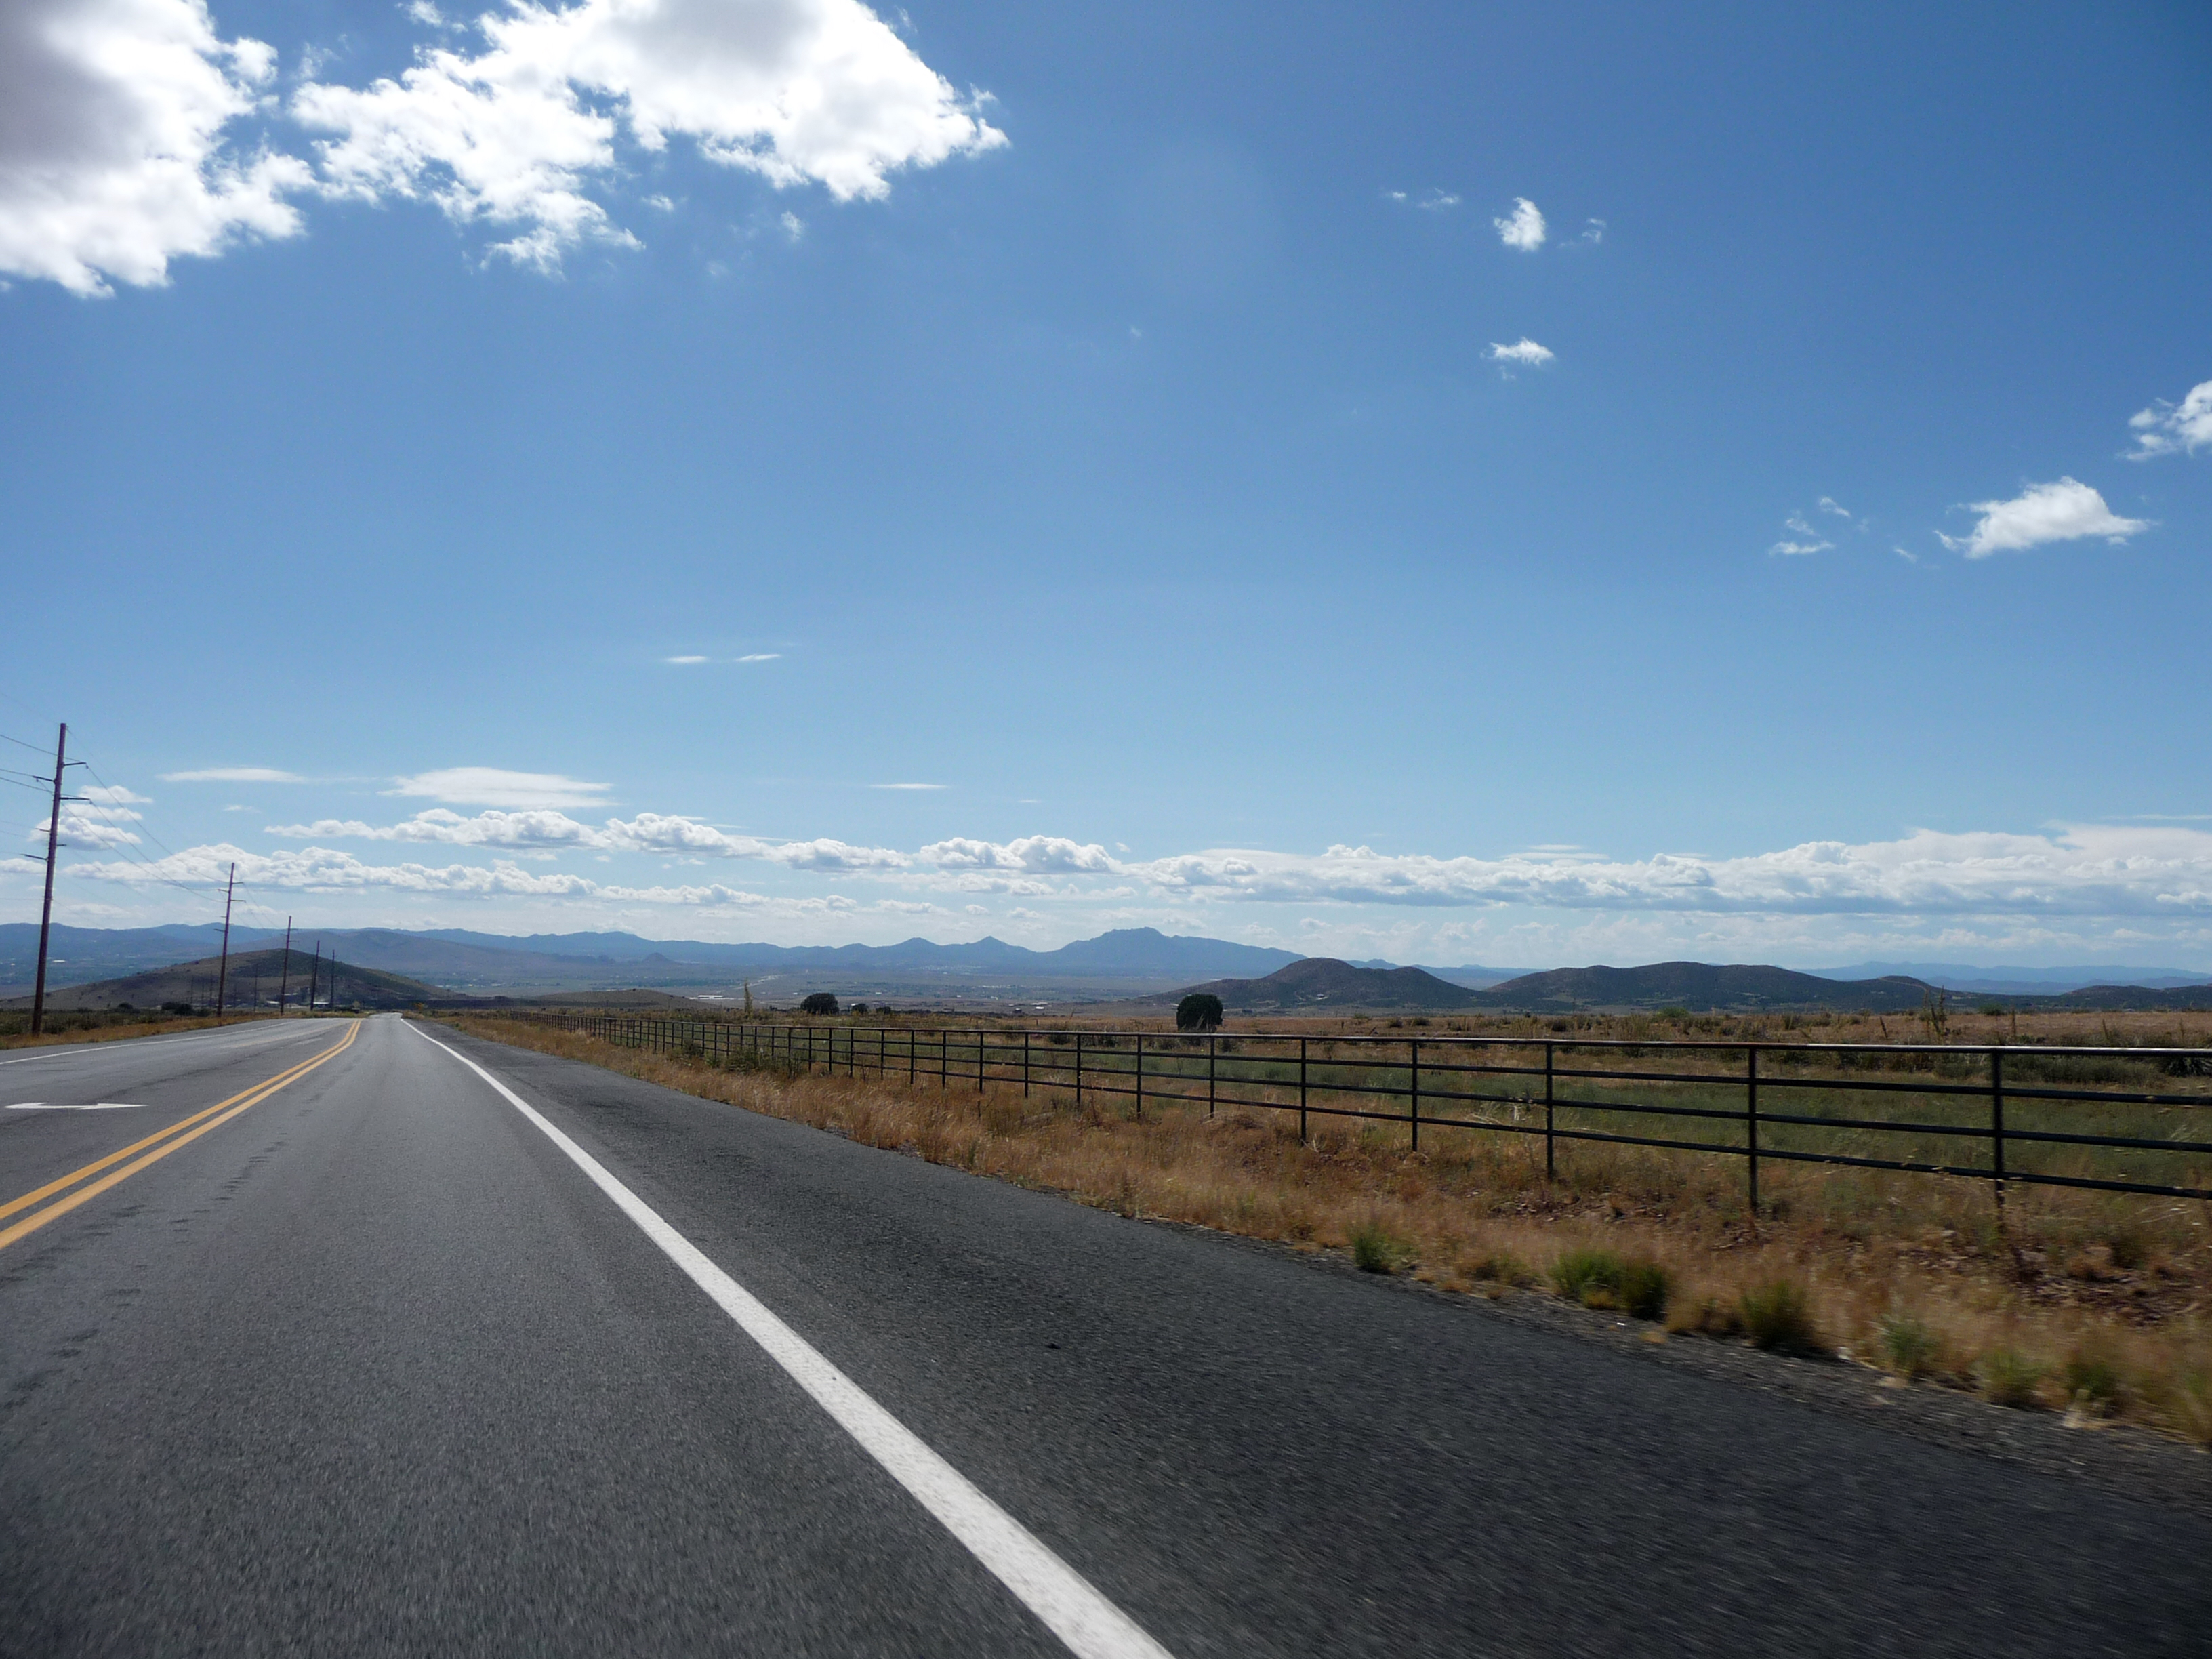 The open road heading out of town